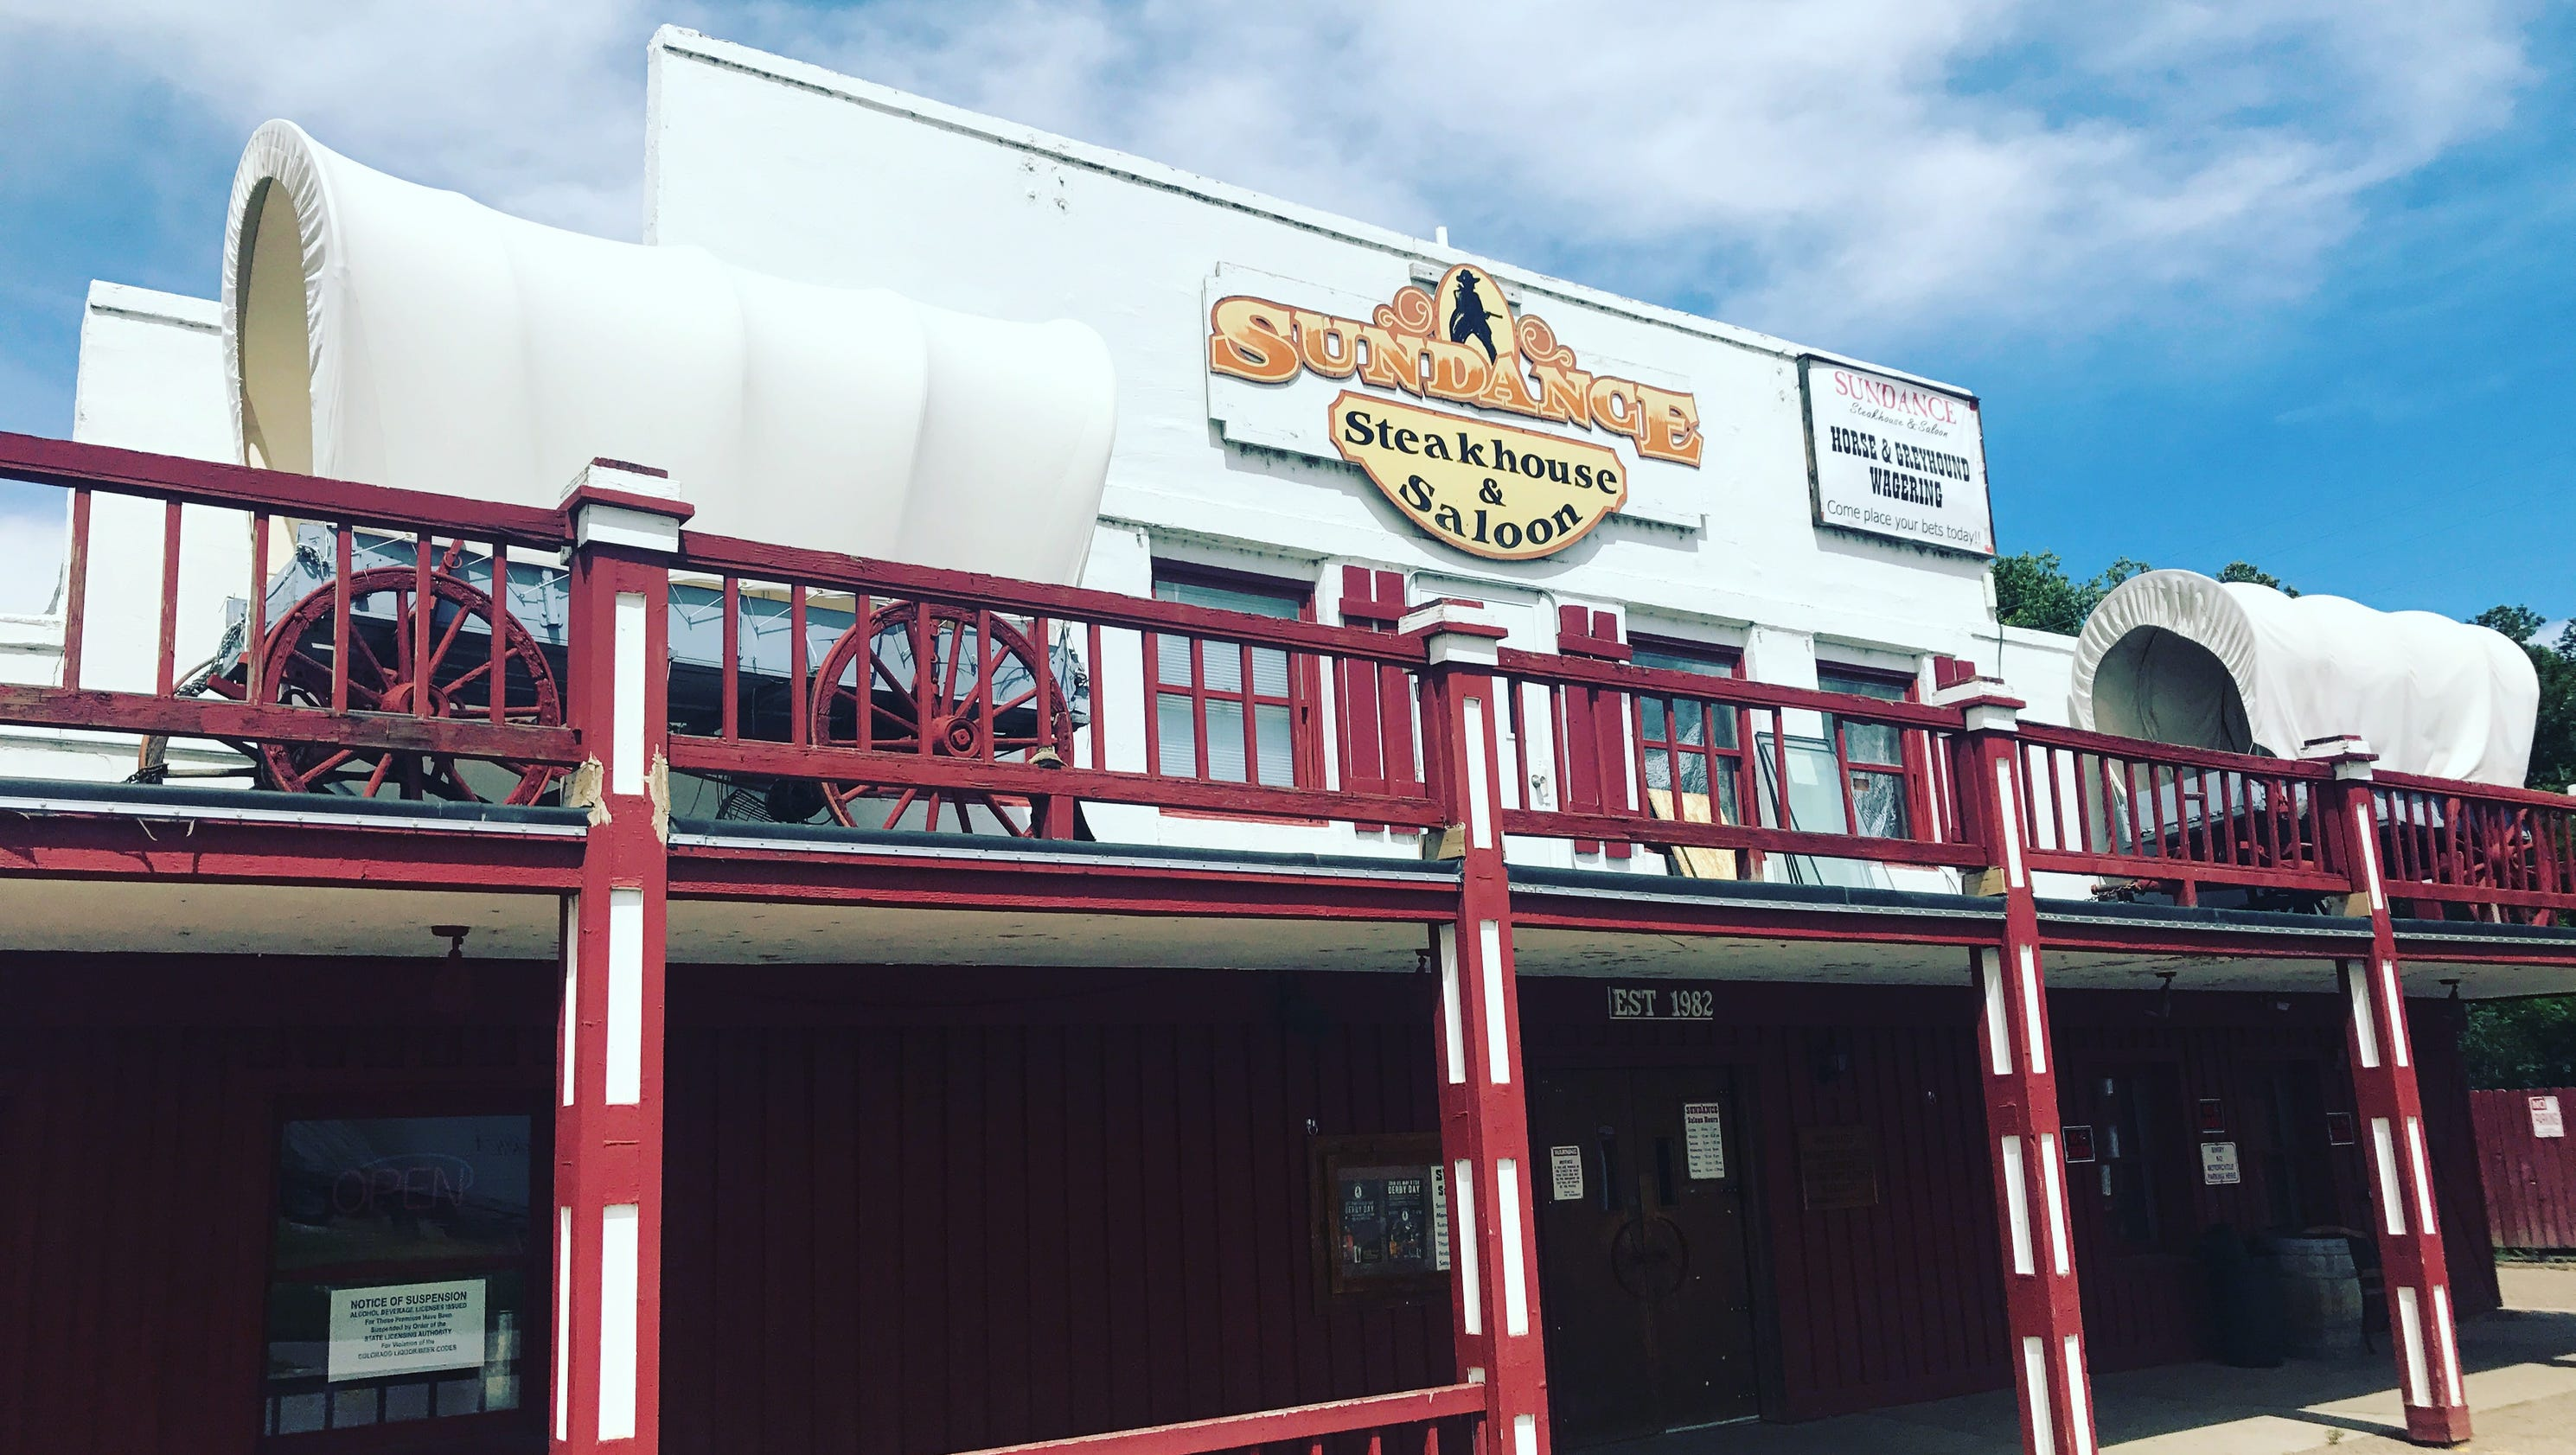 Liquor license suspended for Sundance Steakhouse Saloon